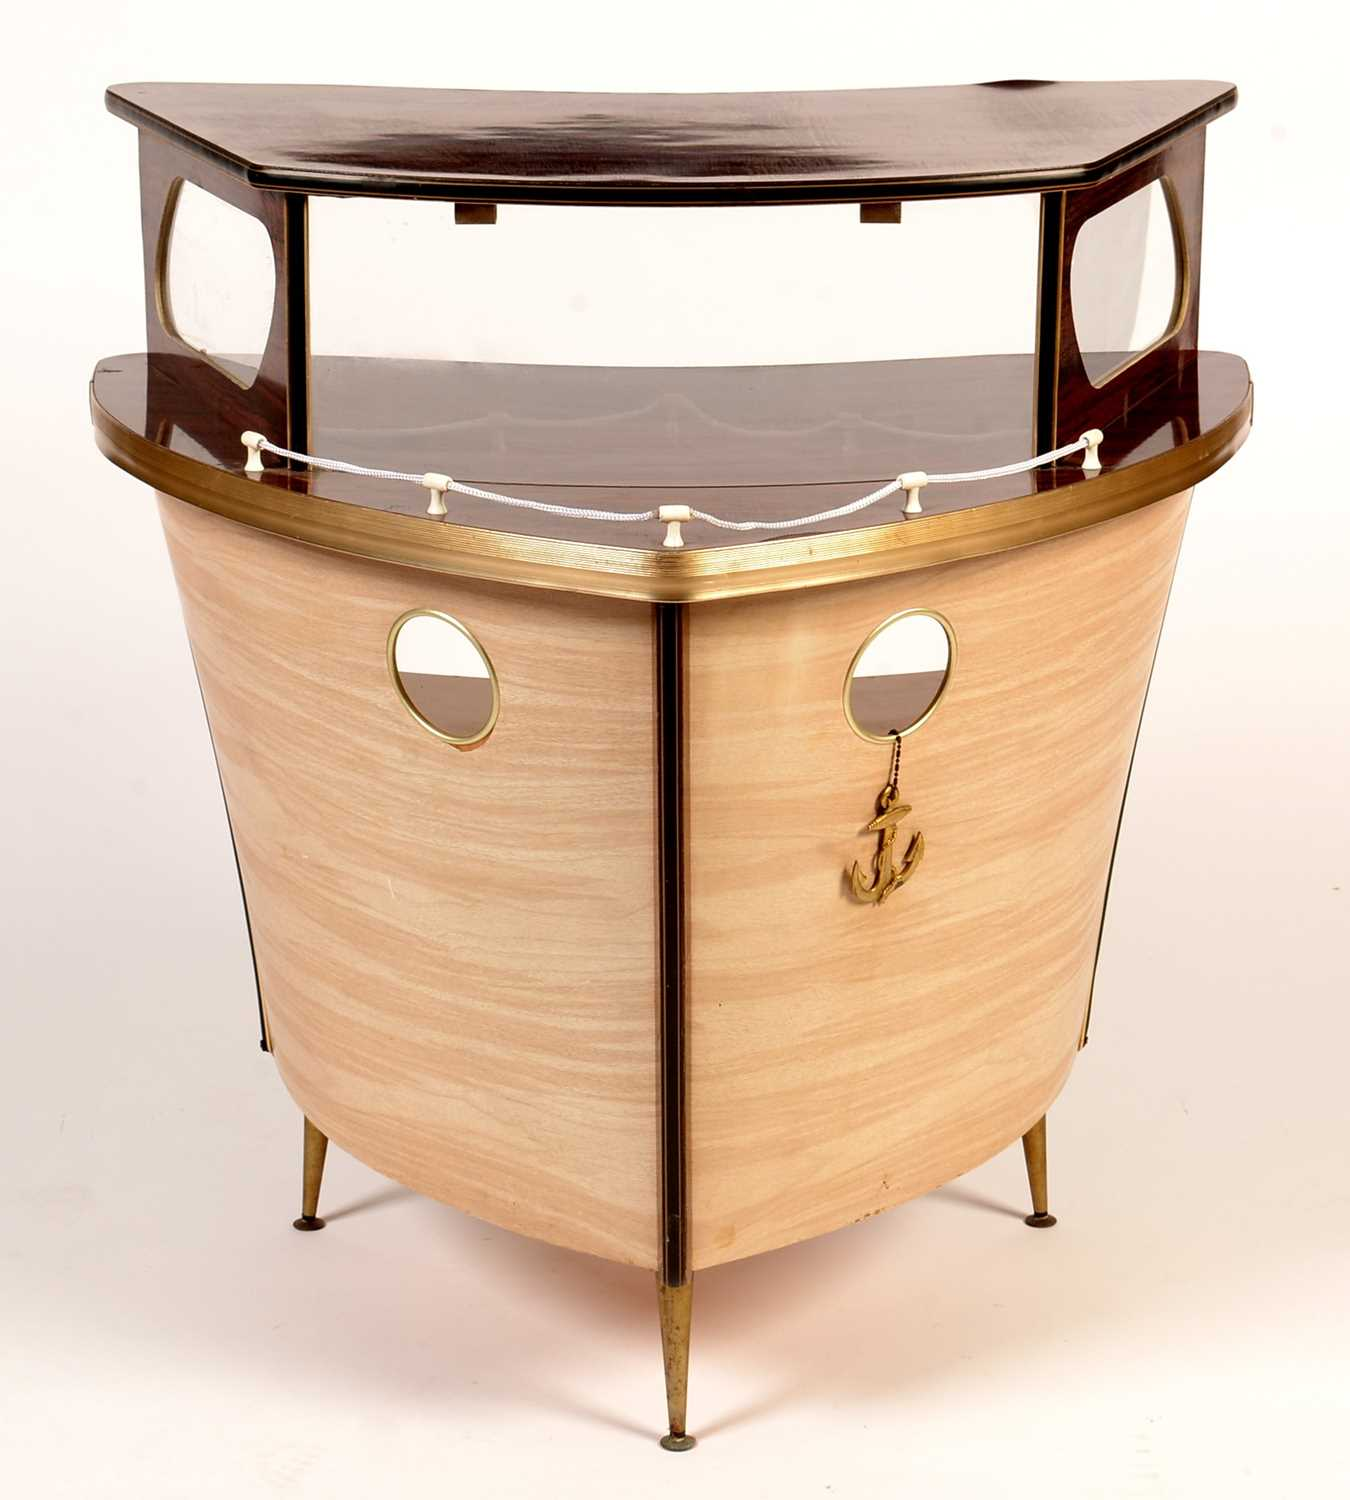 Umberto Mascagni, Bologne, Italy: a mid 20th Century boat form cocktail bar.